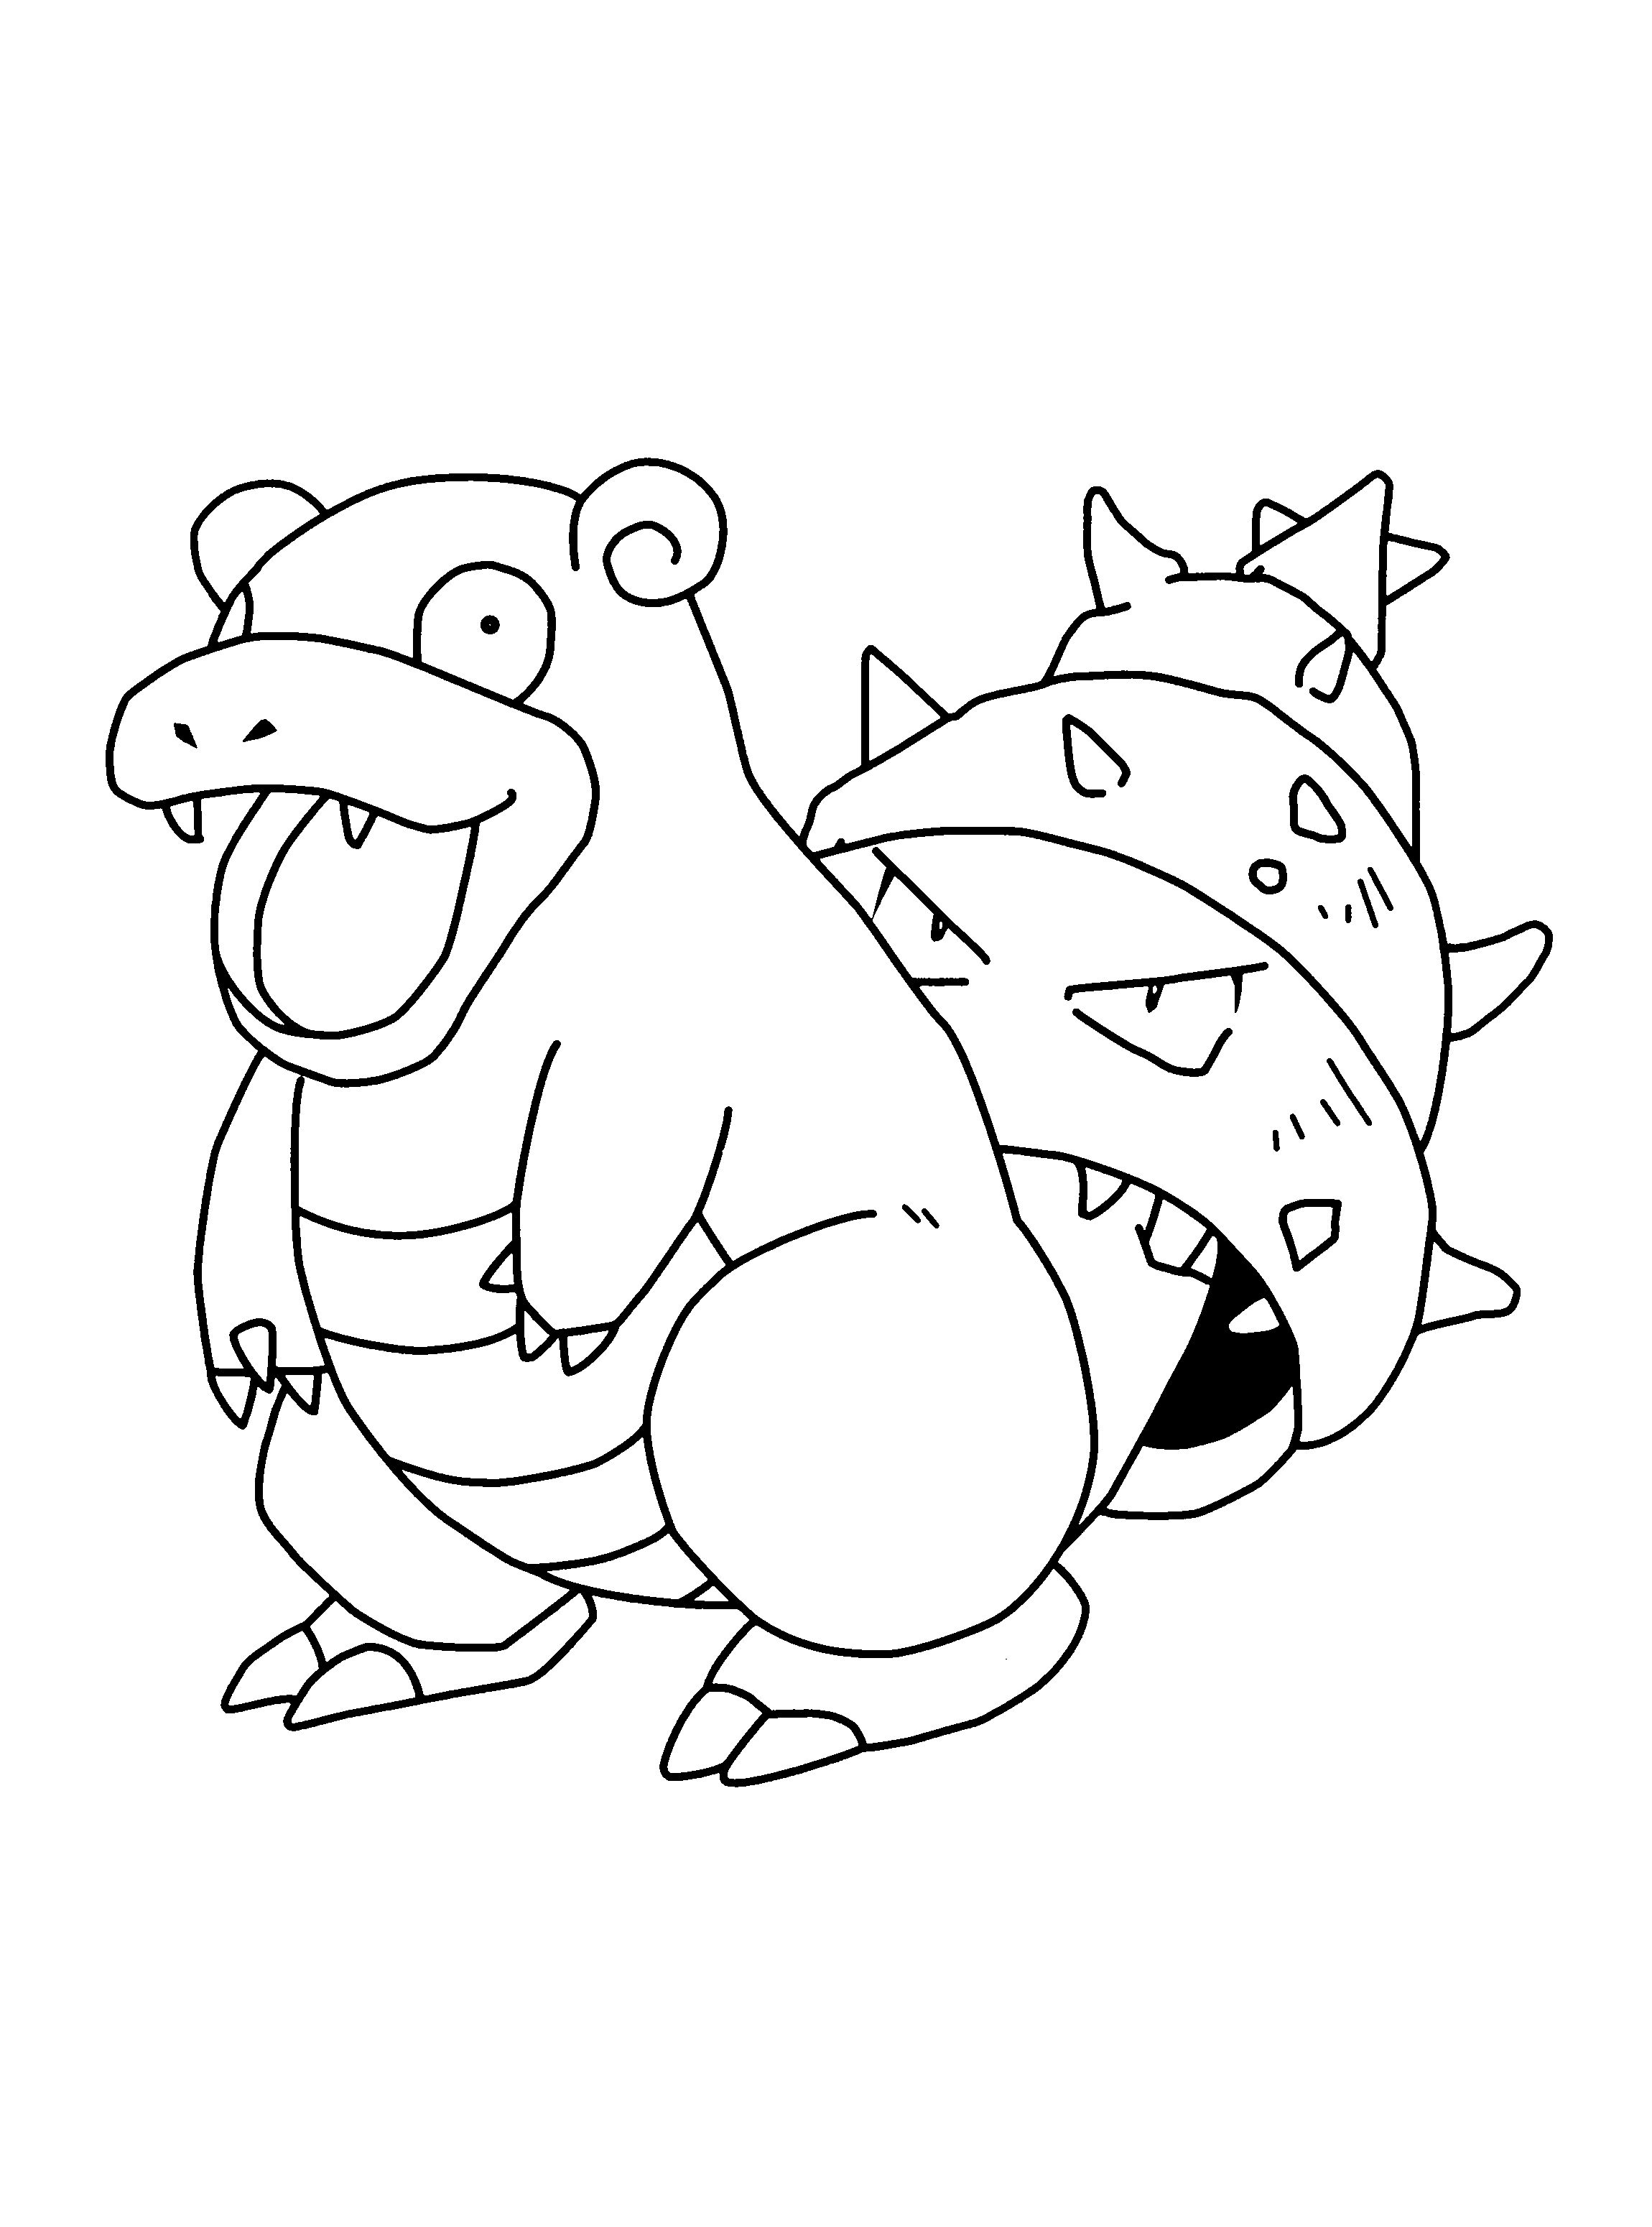 Slowbro Coloring Pages To Print In 2020 Pokemon Coloring